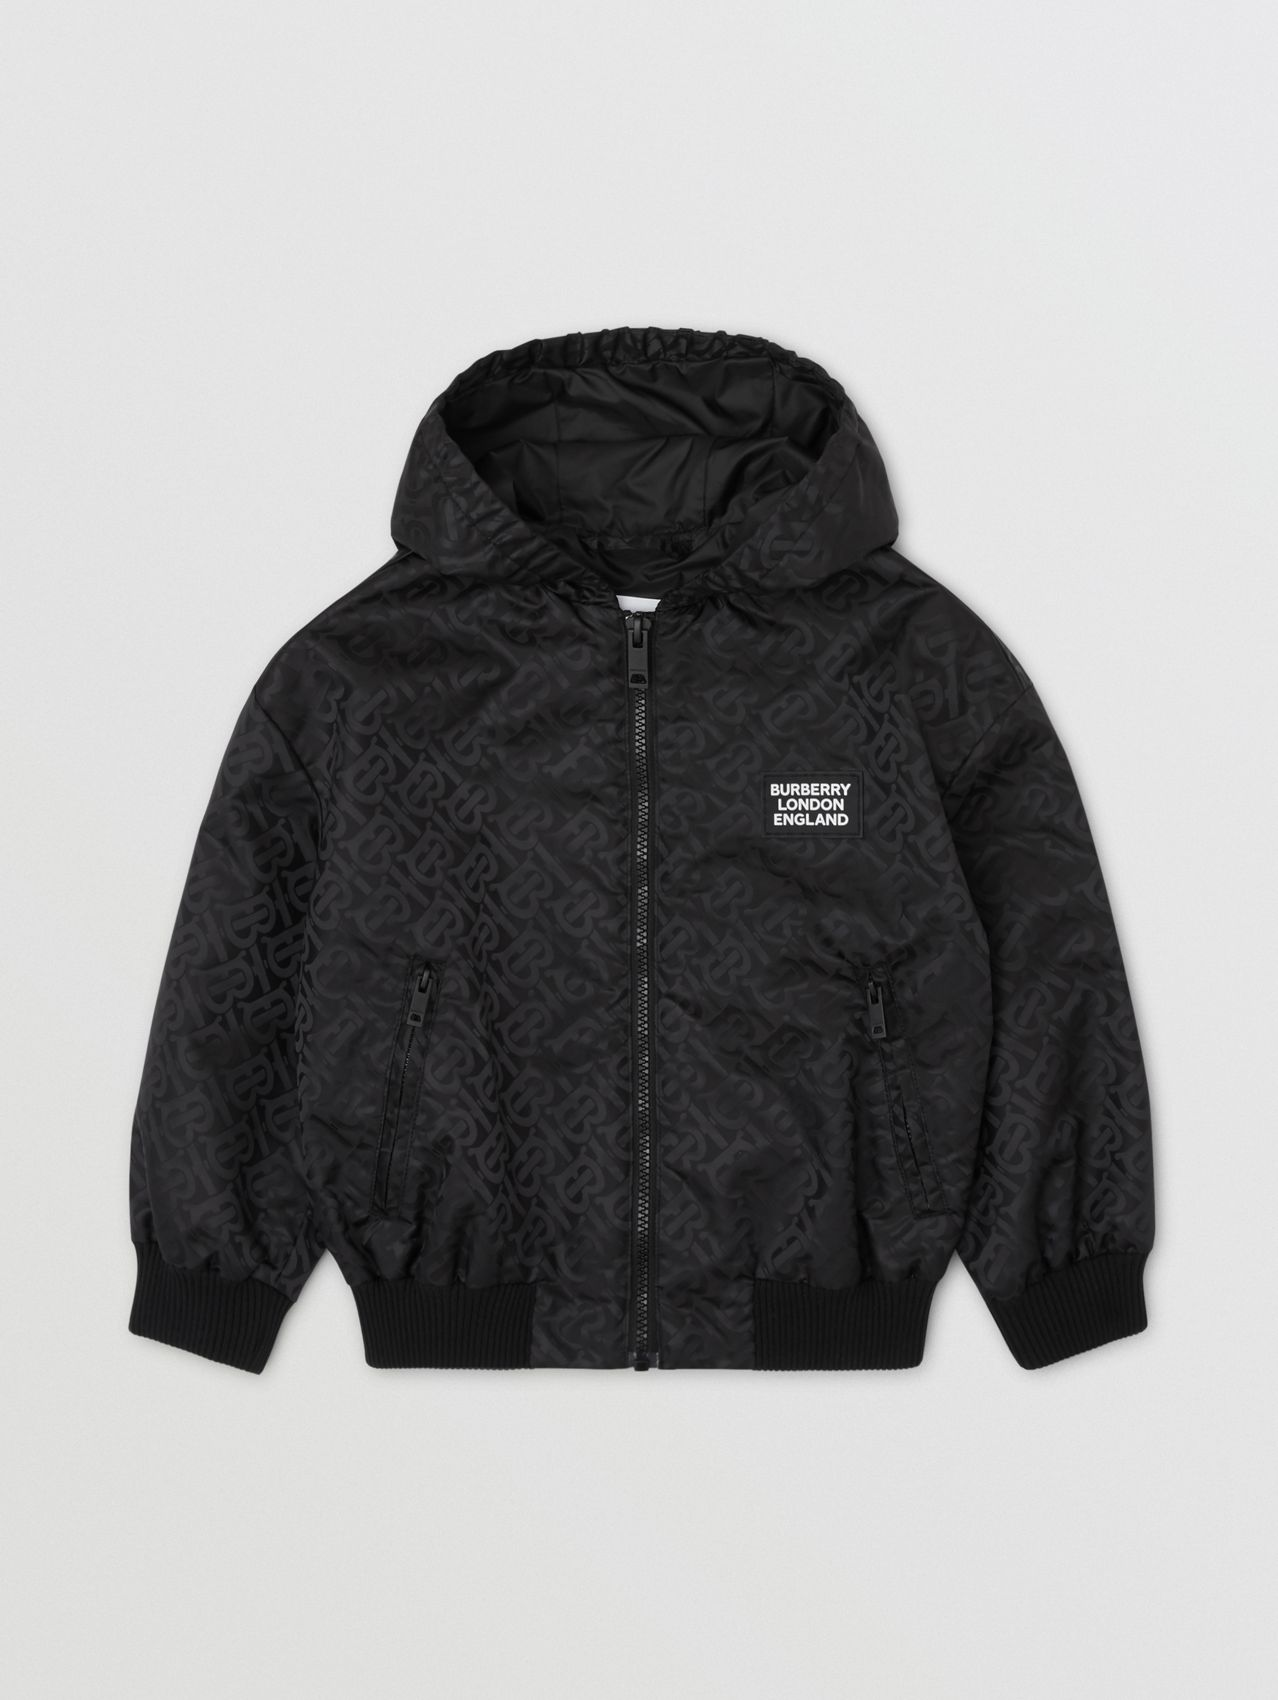 Monogram ECONYL® Hooded Jacket in Black